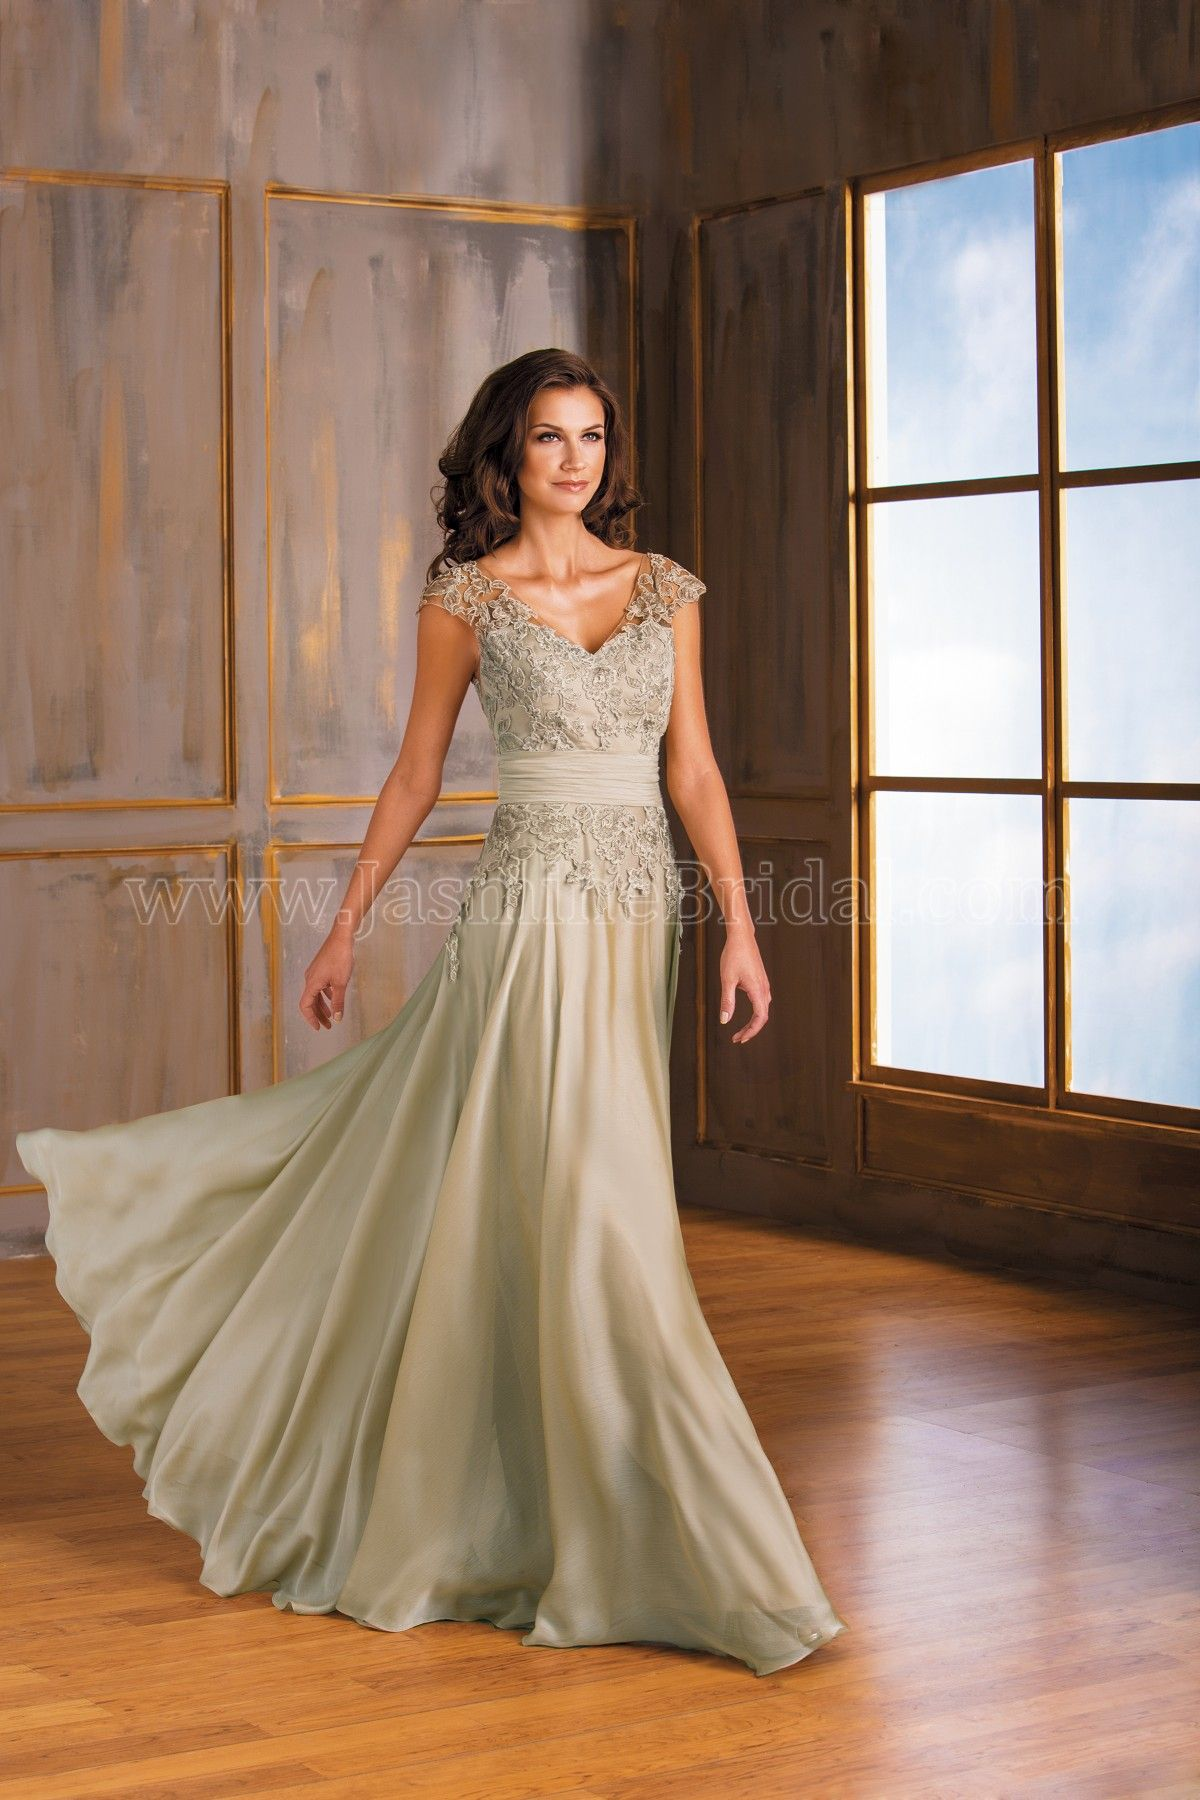 Jasmine Bridal Mother Of The Bride Groom Jade Style J175001 In Champagne Gold A Head Turner For Your Next Special Occasion This Tiffany Chiffon Dress